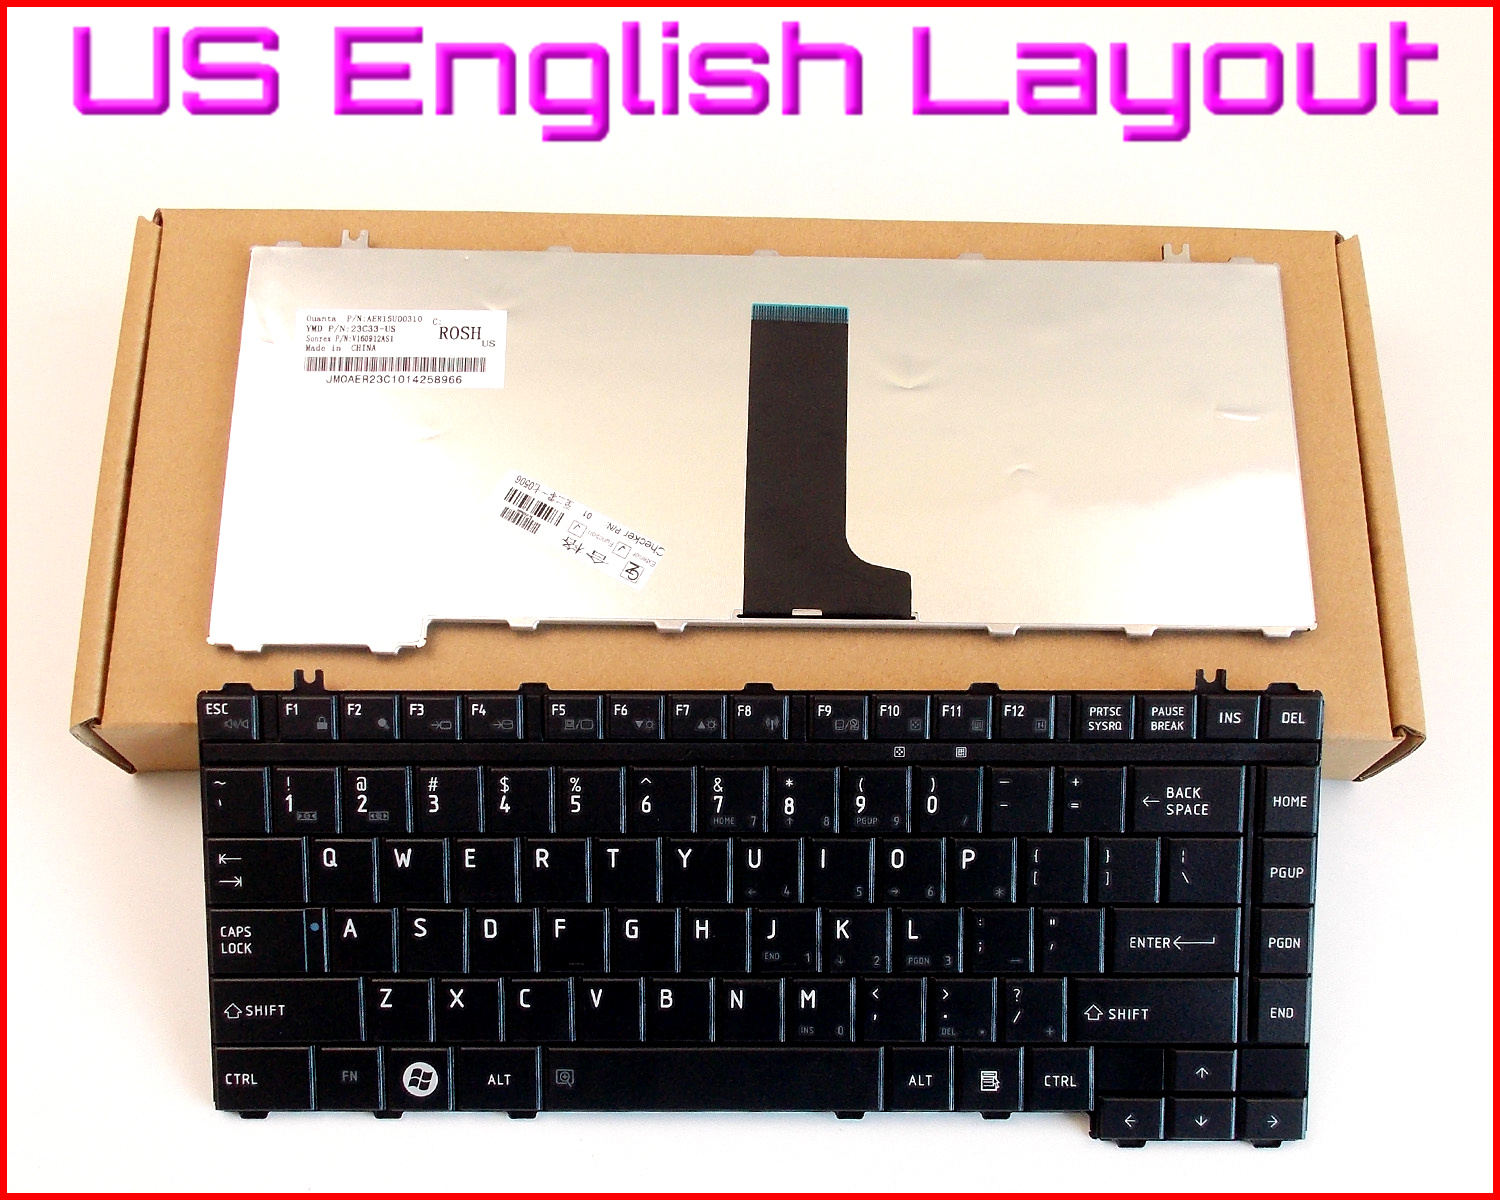 New US English Layout Keyboard for Toshiba Satellite A200 A205 L305 L305D A310 A315 M300 M305 M305D A300 A300D L300 L300D Laptop 14pcs lot tangle free debris extractor replacement kit for irobot roomba 800 900 series 870 880 980 vacuum robots accessory pa